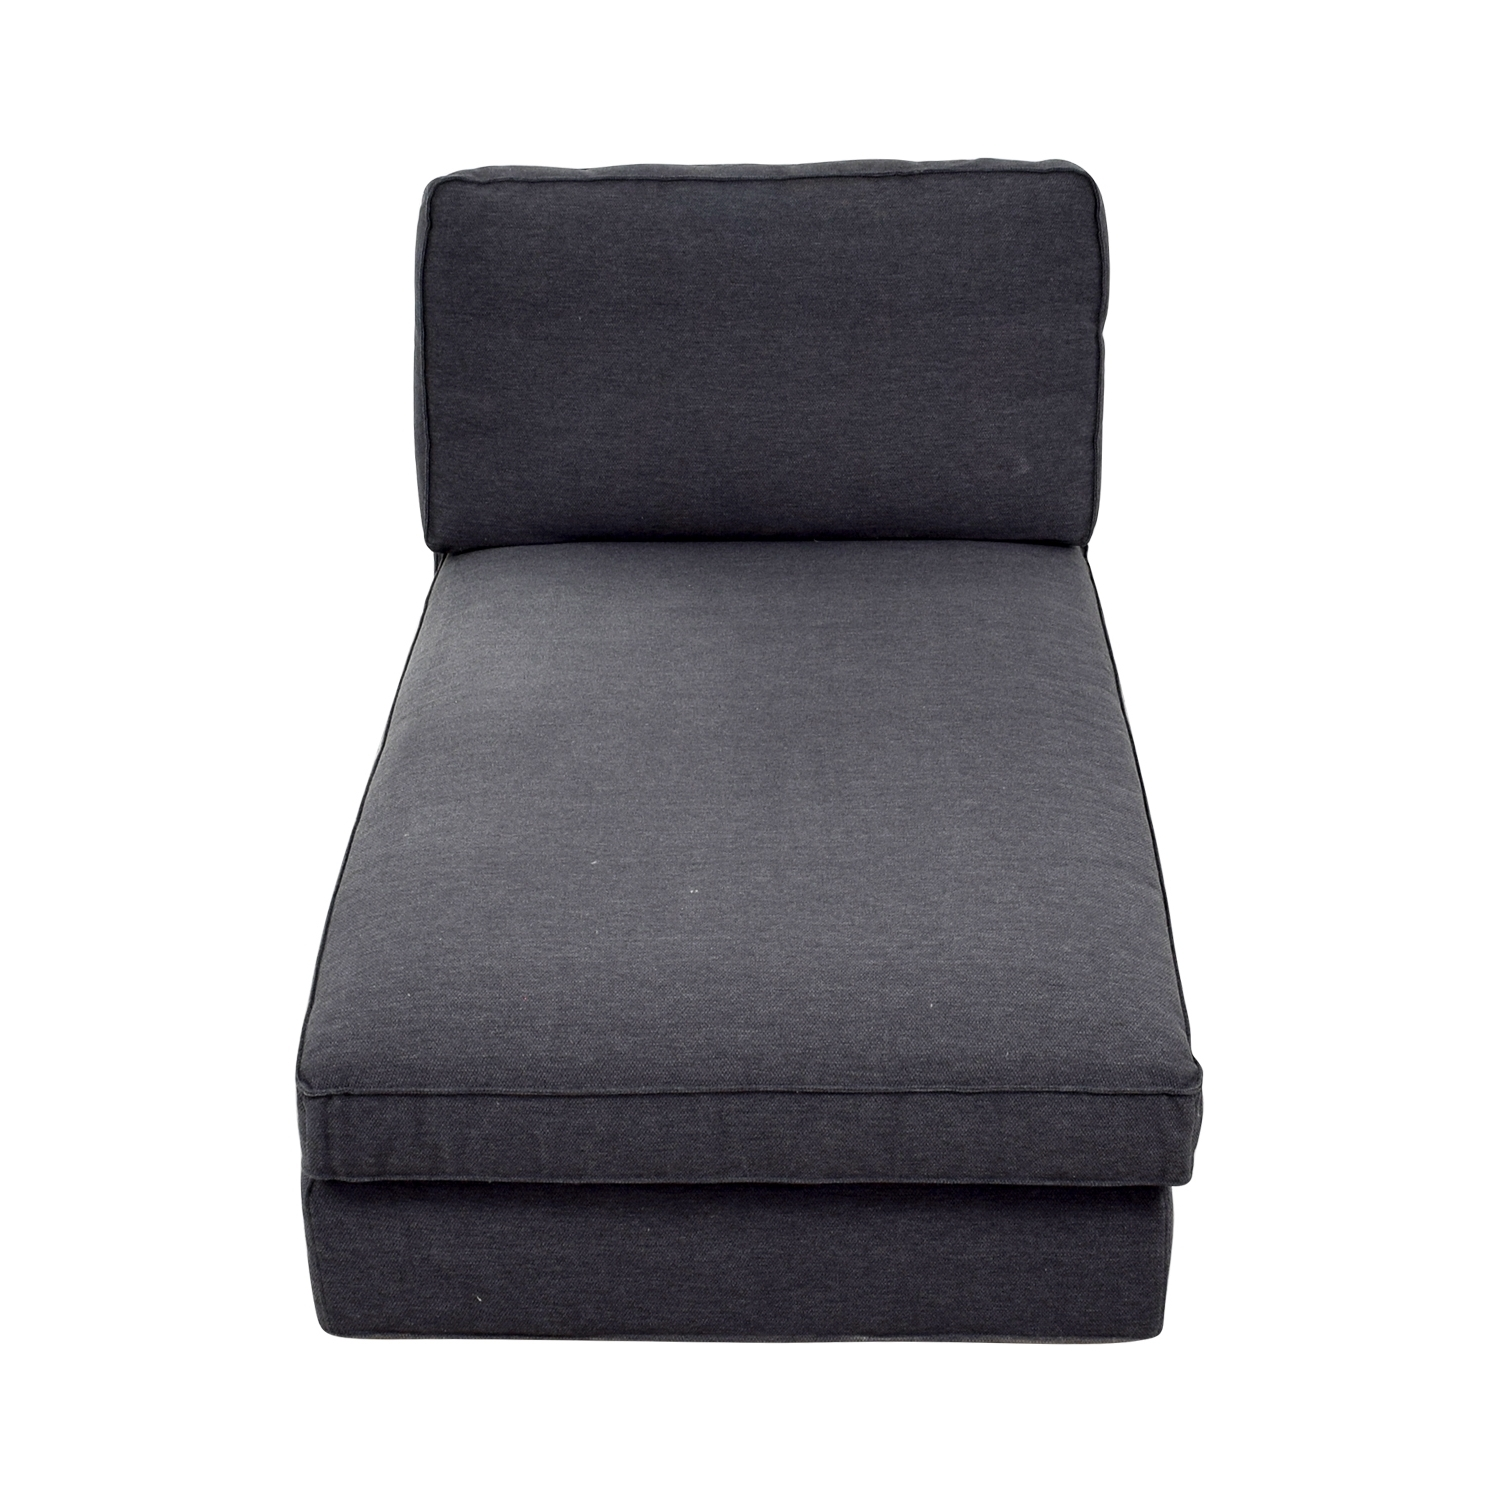 [%86% Off – Pottery Barn Pottery Barn Chaise Lounge / Sofas Pertaining To Best And Newest Pottery Barn Chaise Lounges|Pottery Barn Chaise Lounges For Most Up To Date 86% Off – Pottery Barn Pottery Barn Chaise Lounge / Sofas|Favorite Pottery Barn Chaise Lounges Inside 86% Off – Pottery Barn Pottery Barn Chaise Lounge / Sofas|Favorite 86% Off – Pottery Barn Pottery Barn Chaise Lounge / Sofas Pertaining To Pottery Barn Chaise Lounges%] (View 1 of 15)